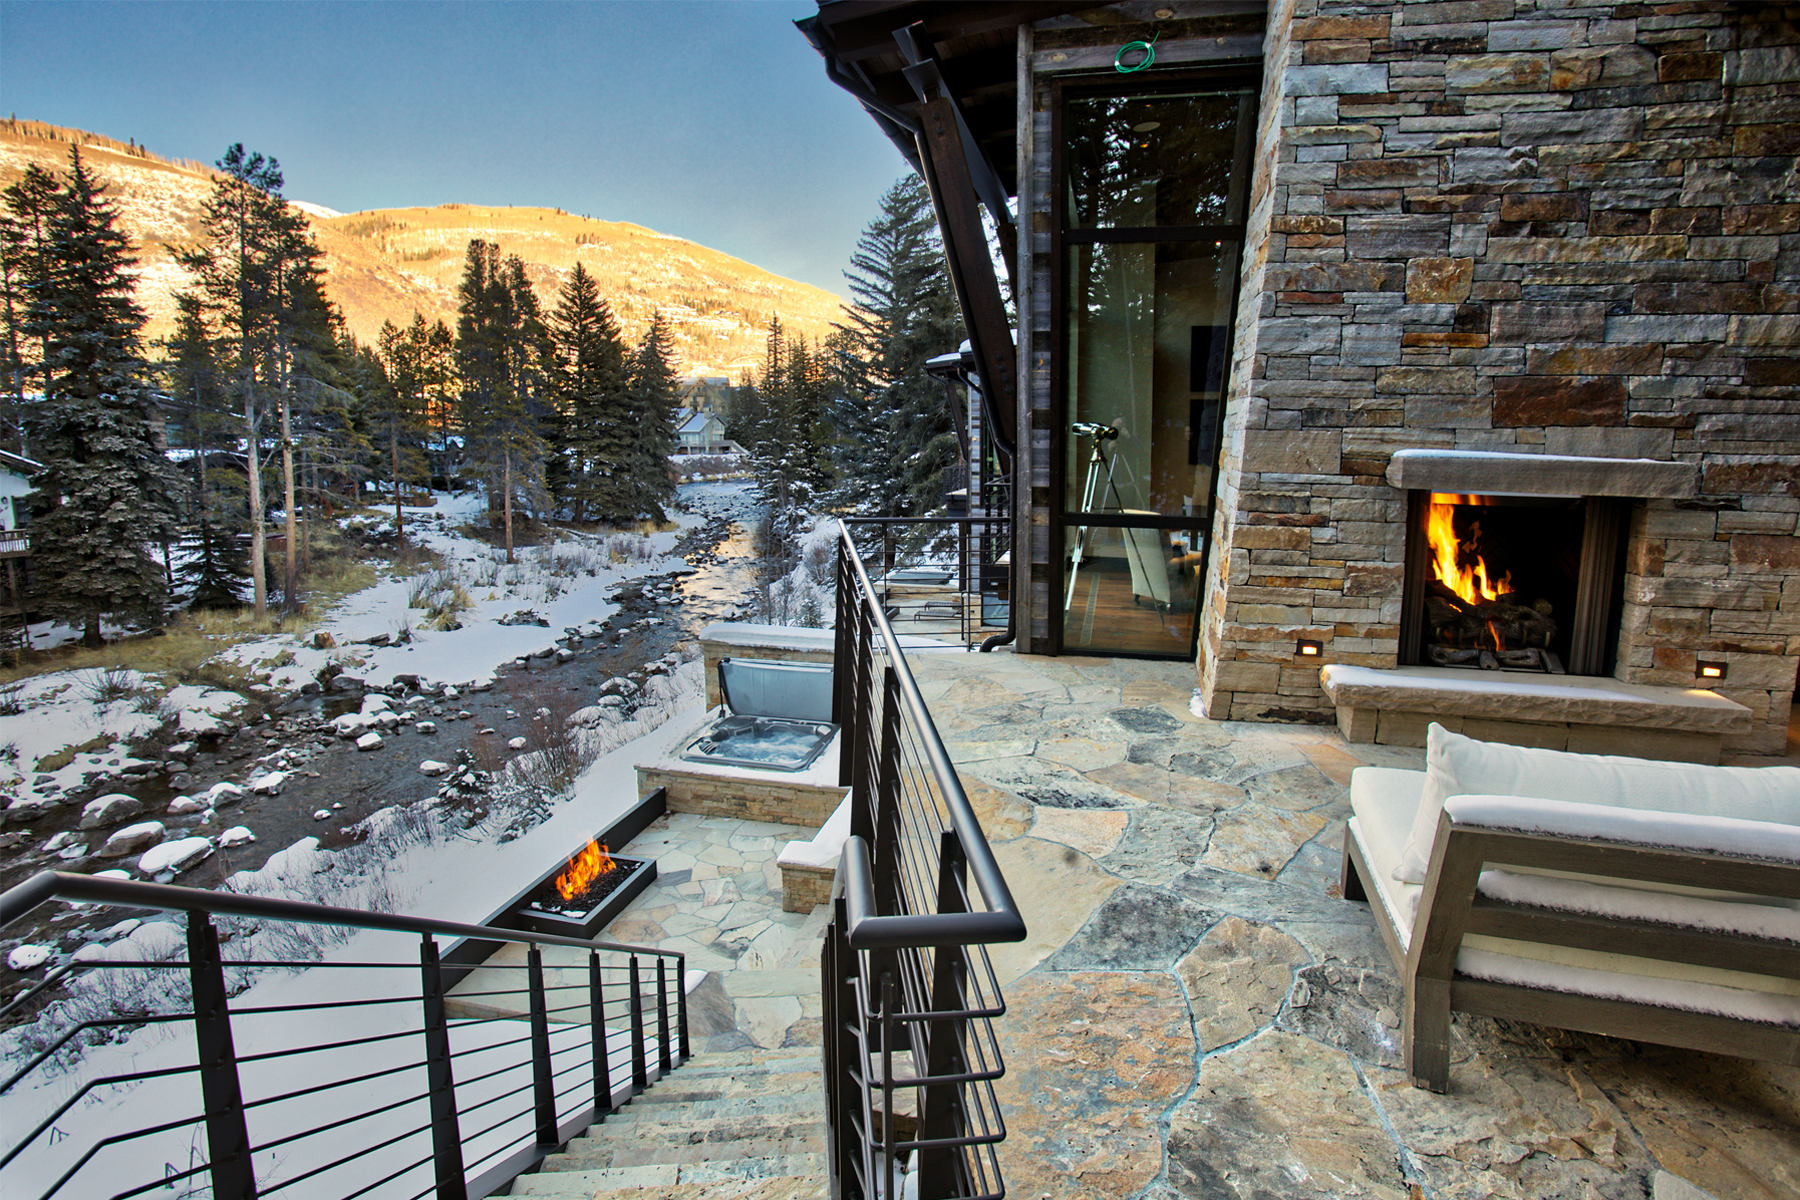 Duplex for Sale at A Modern Masterpiece with Rustic Mountain Overtones 223 Beaver Dam Rd, Vail Village, Vail, Colorado, 81657 United States